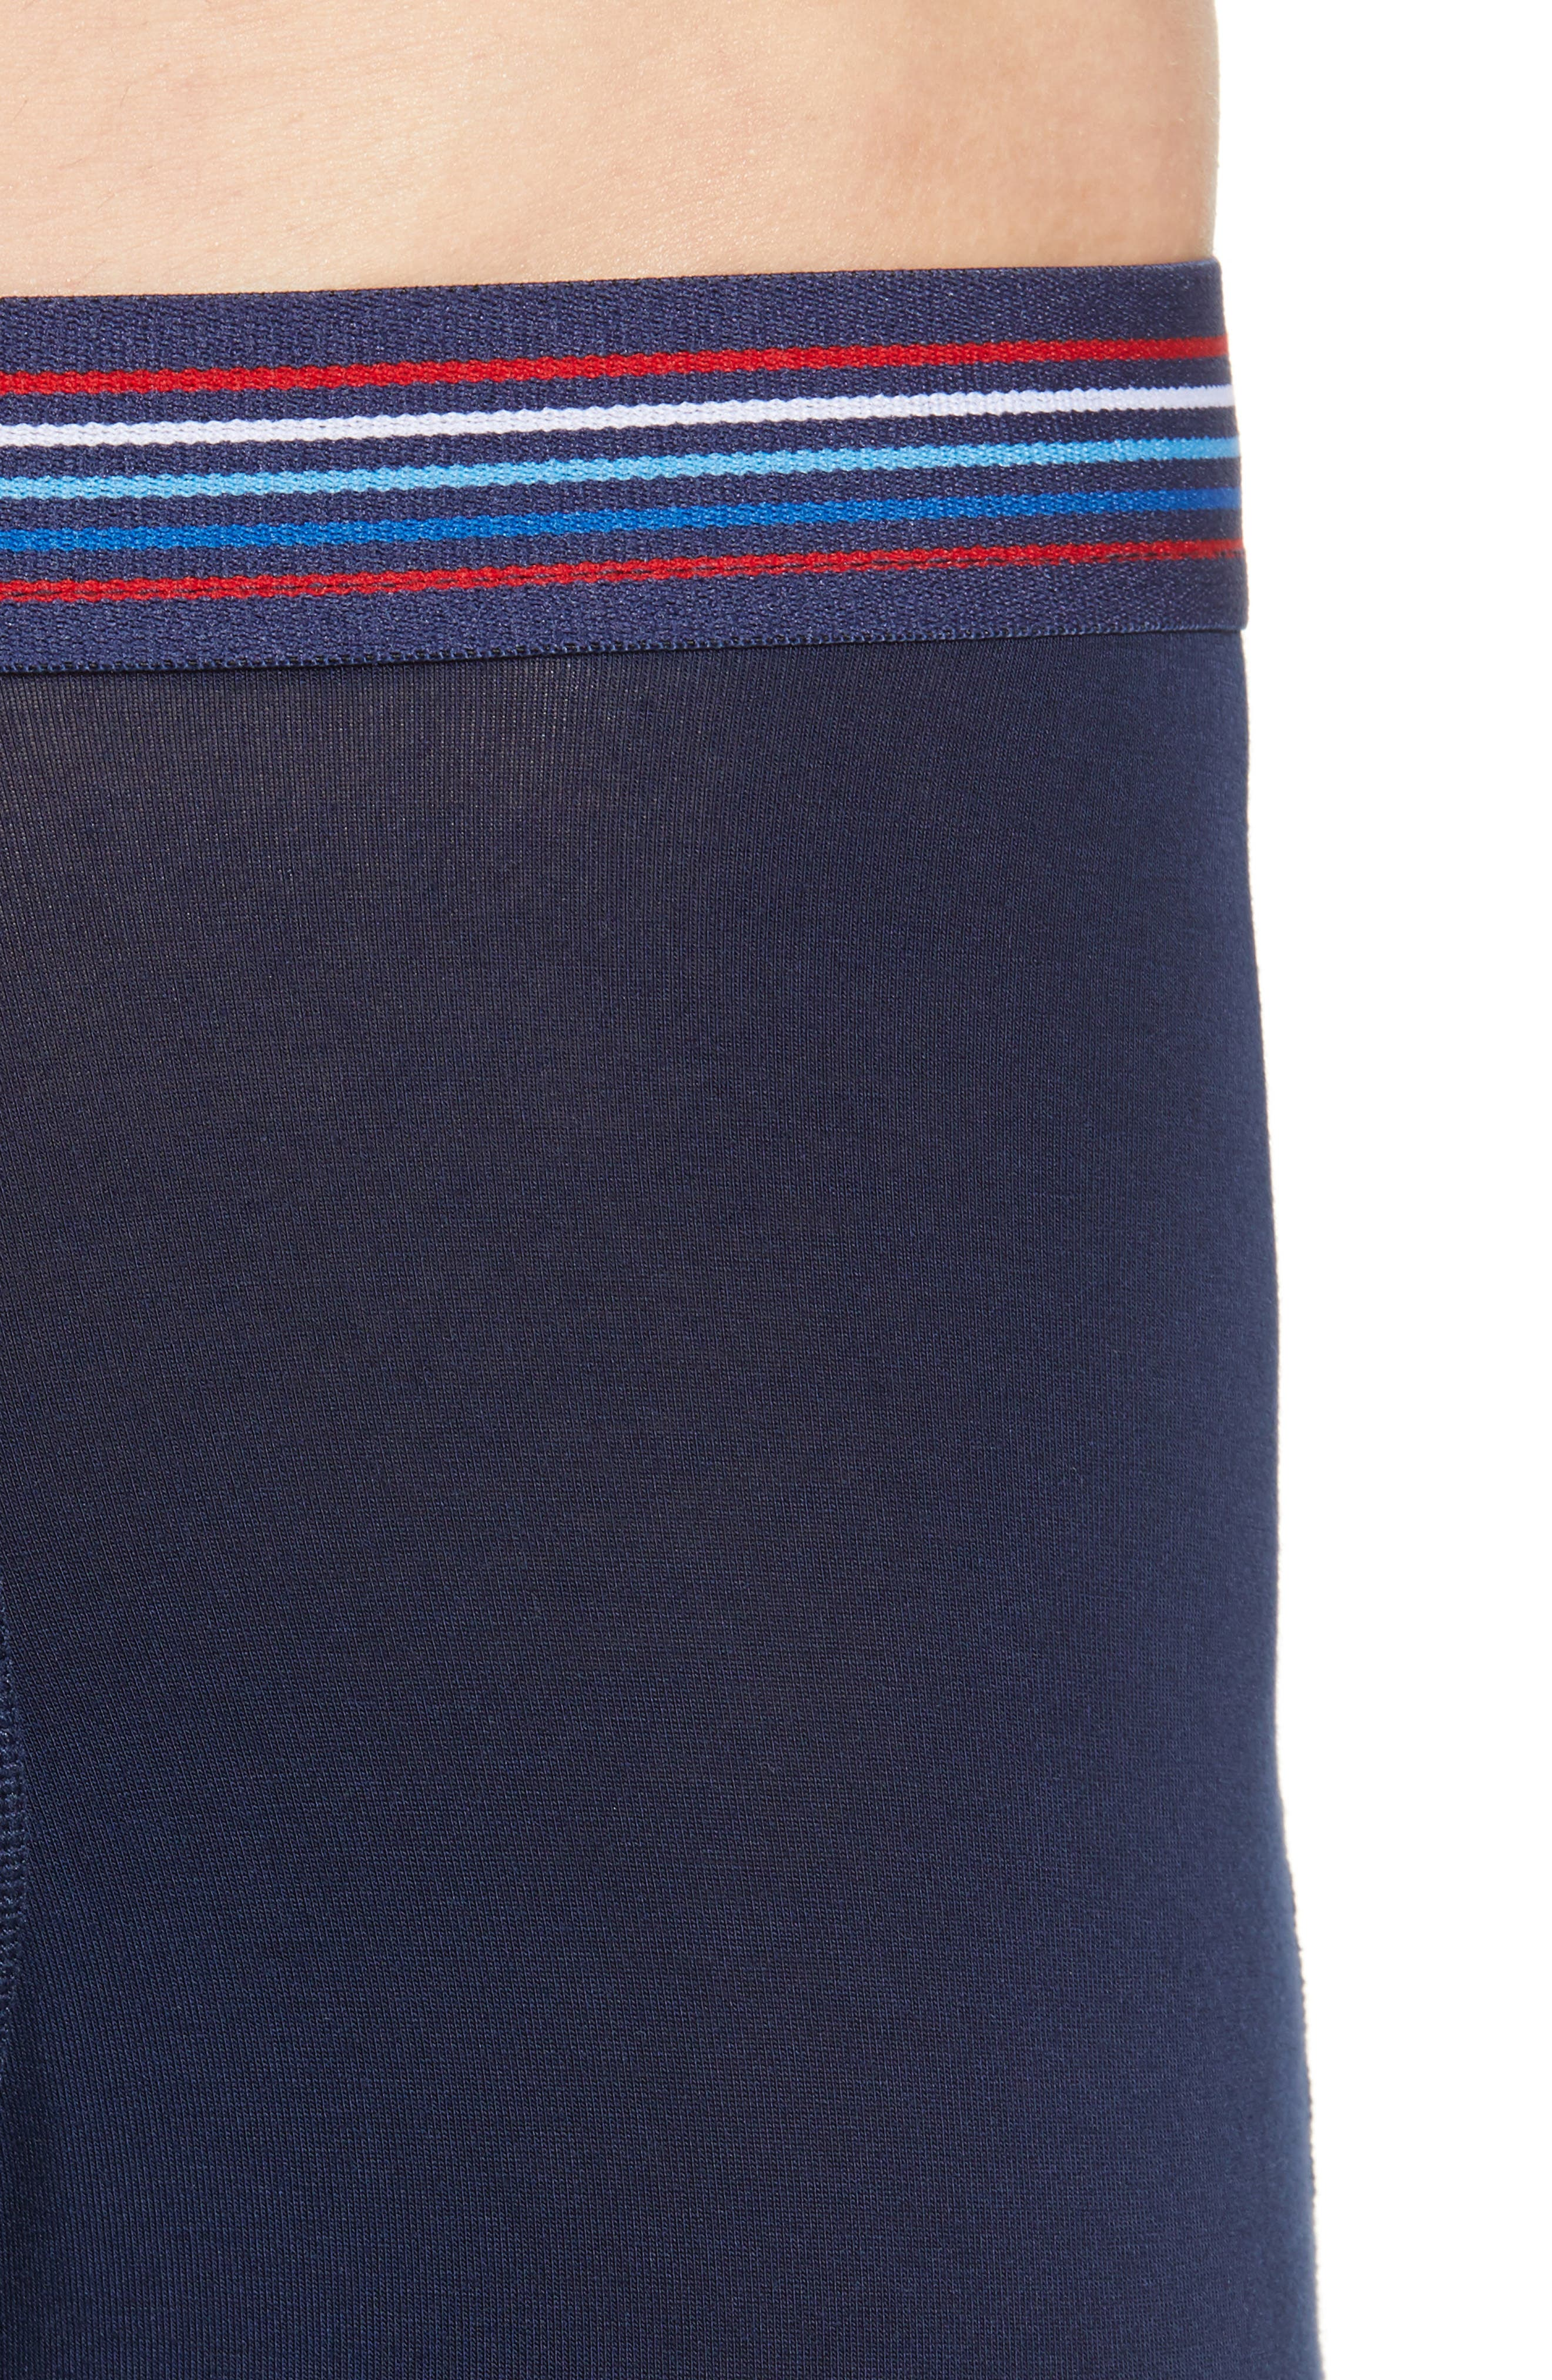 Vibe Modern Fit Boxer Brief,                             Alternate thumbnail 4, color,                             NAVY MULTI